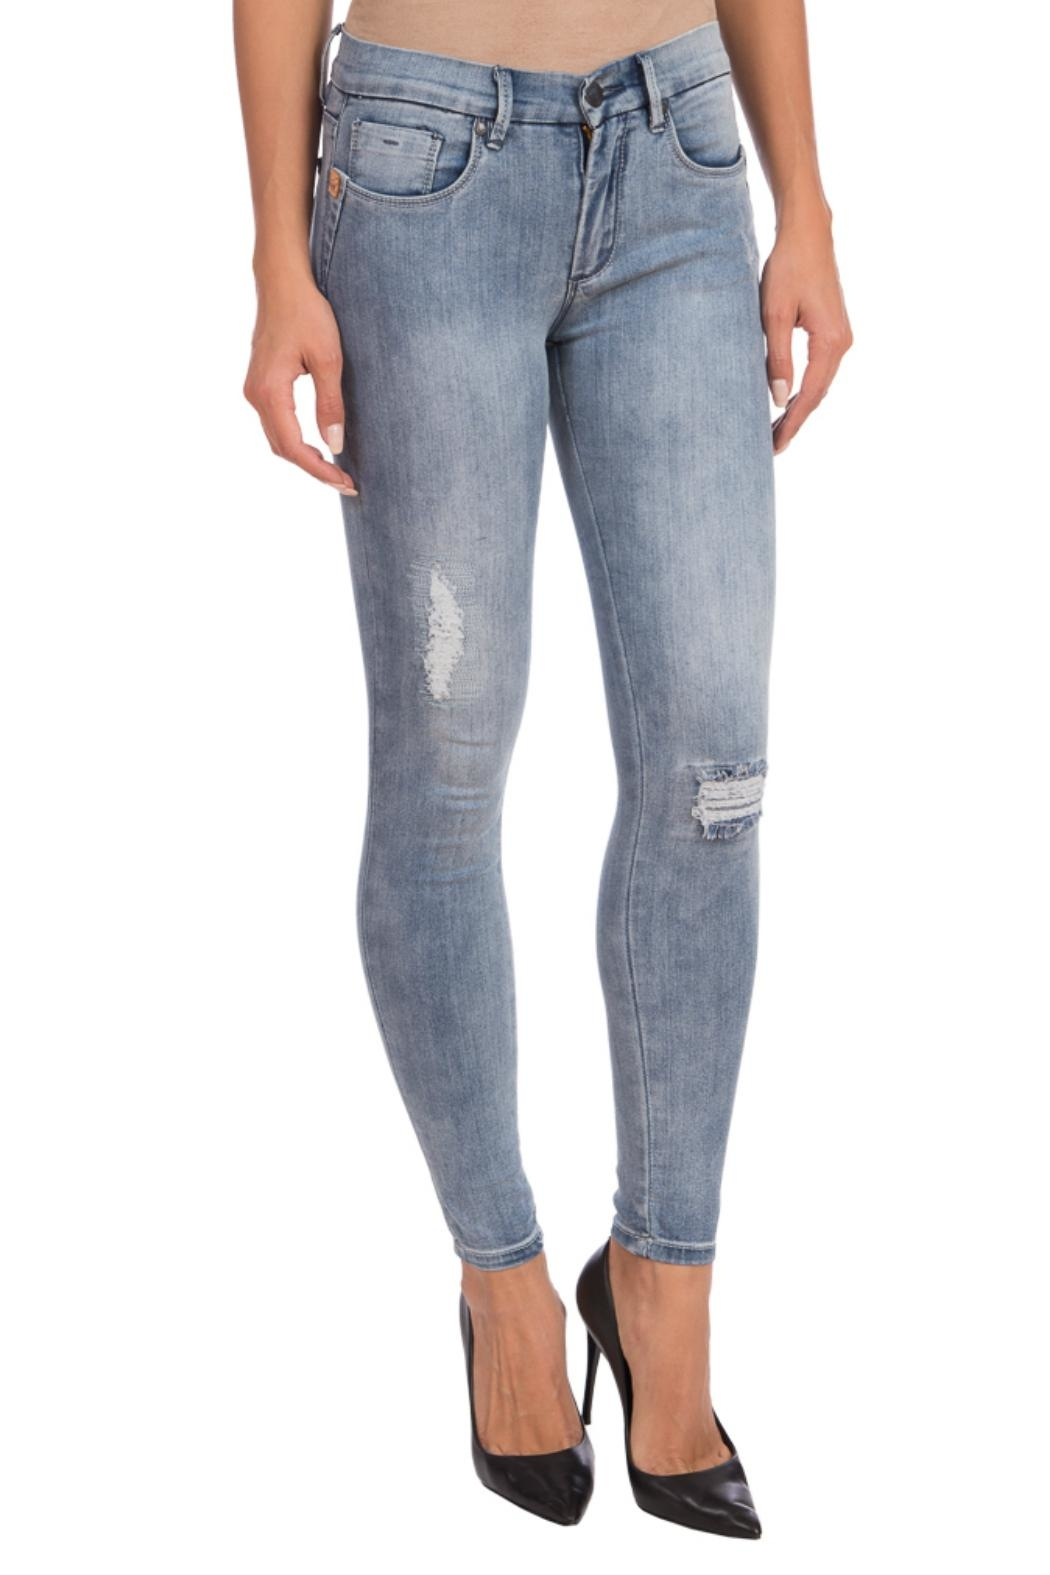 Lola Jeans Midrise Stretch Jean - Main Image